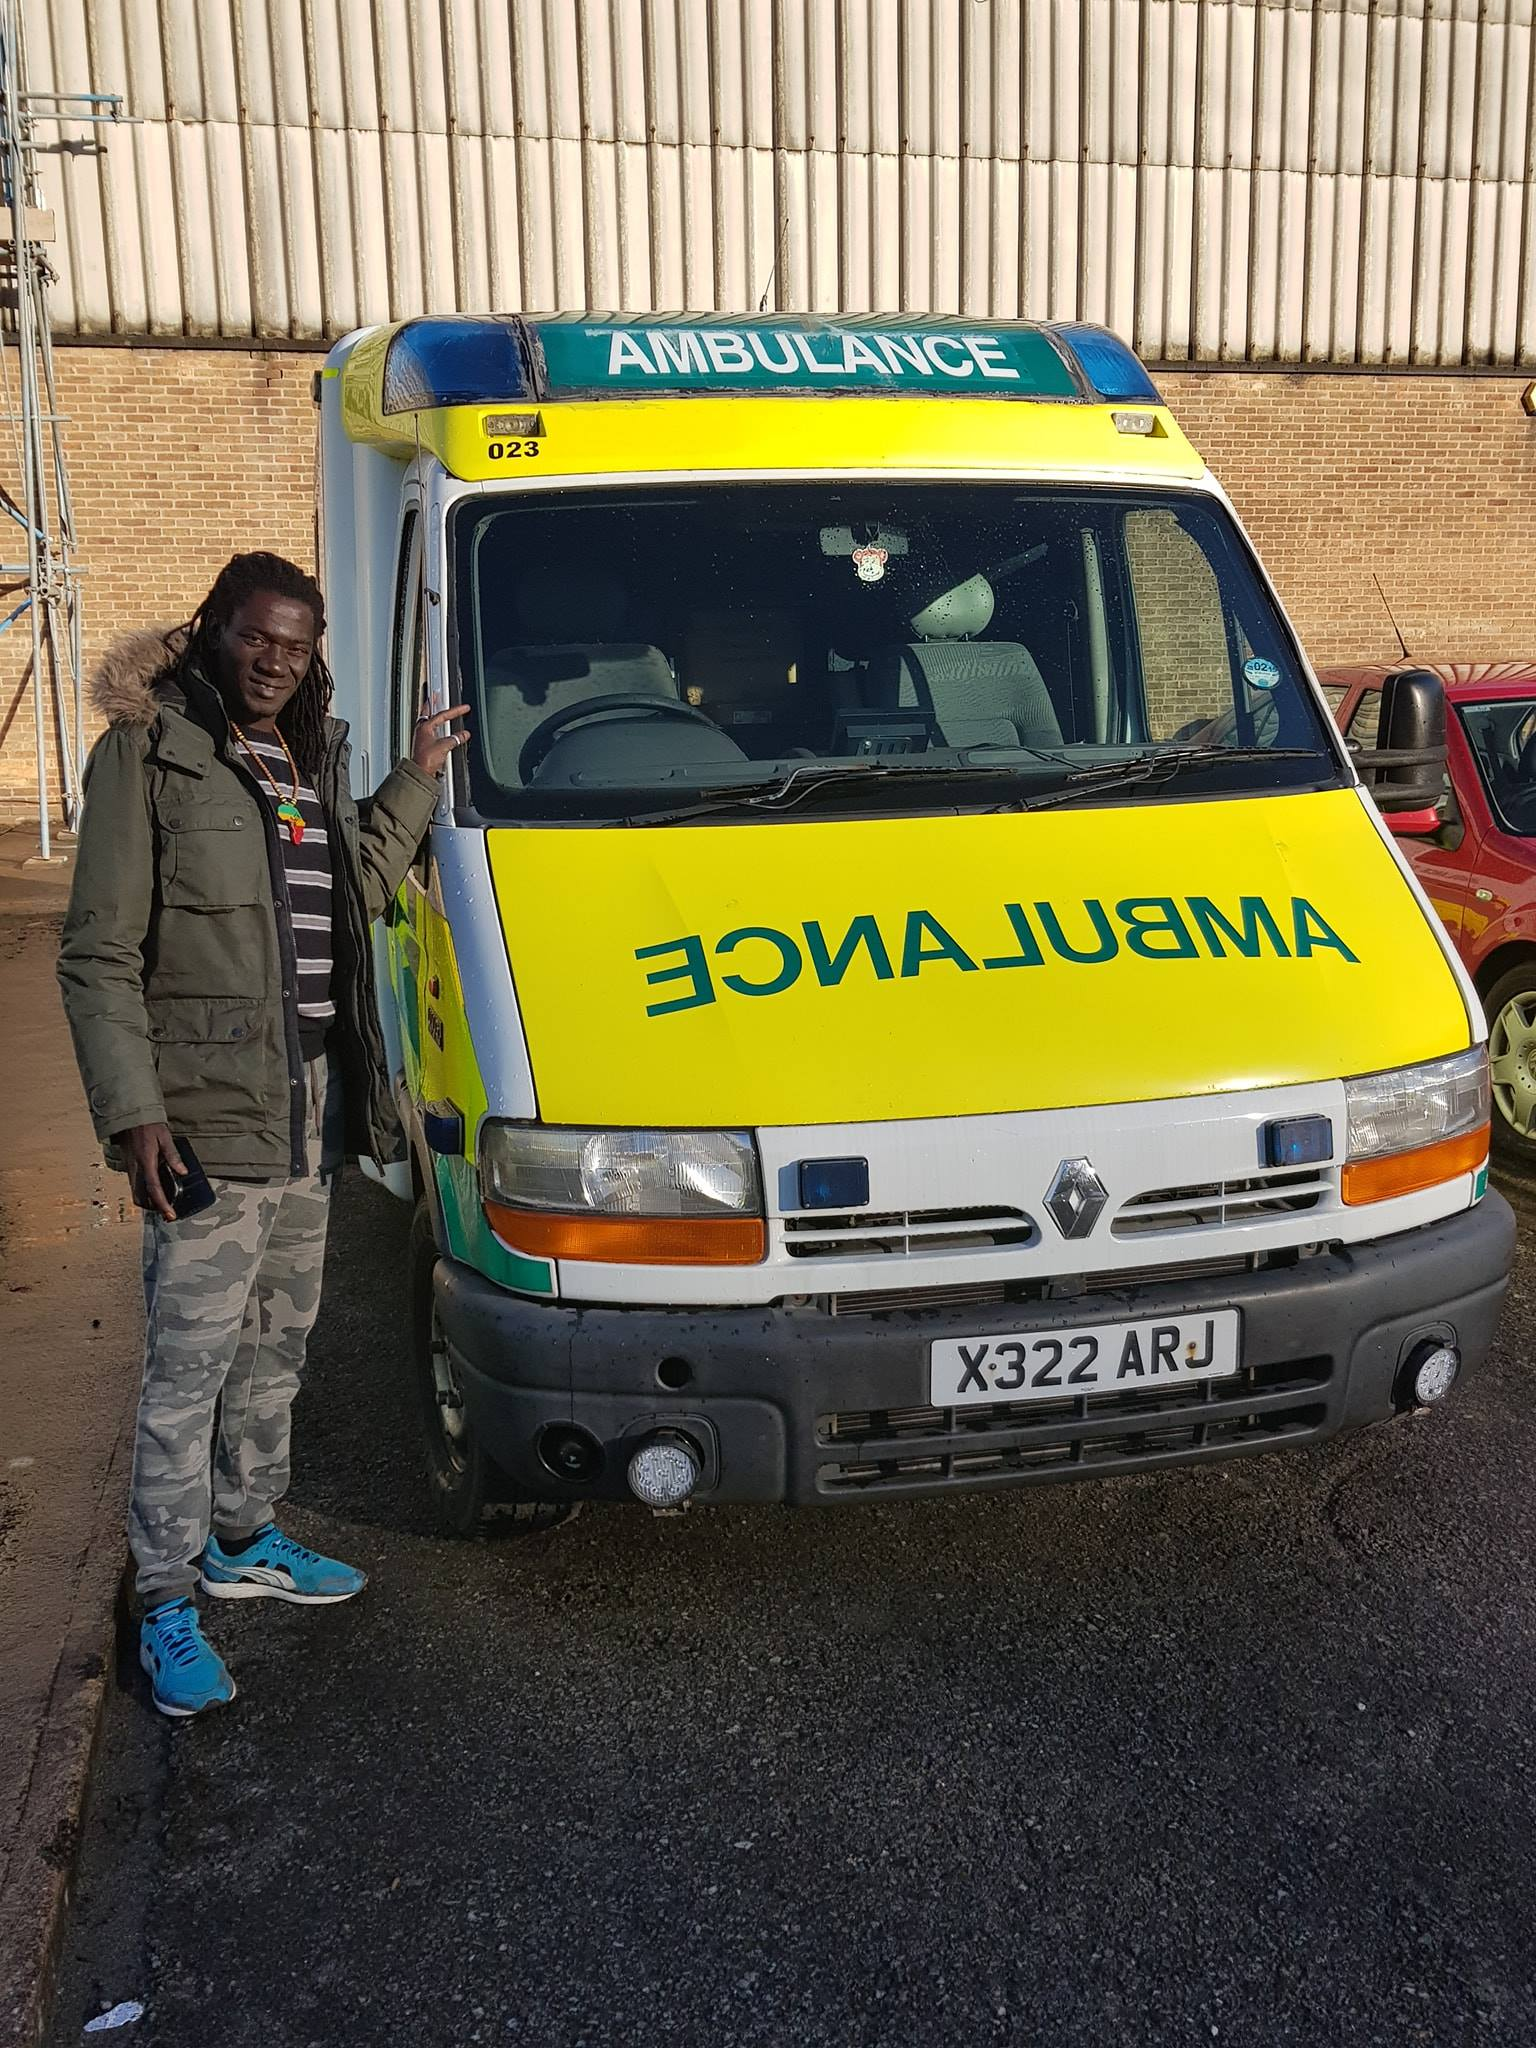 Baba with one of the Ambulances